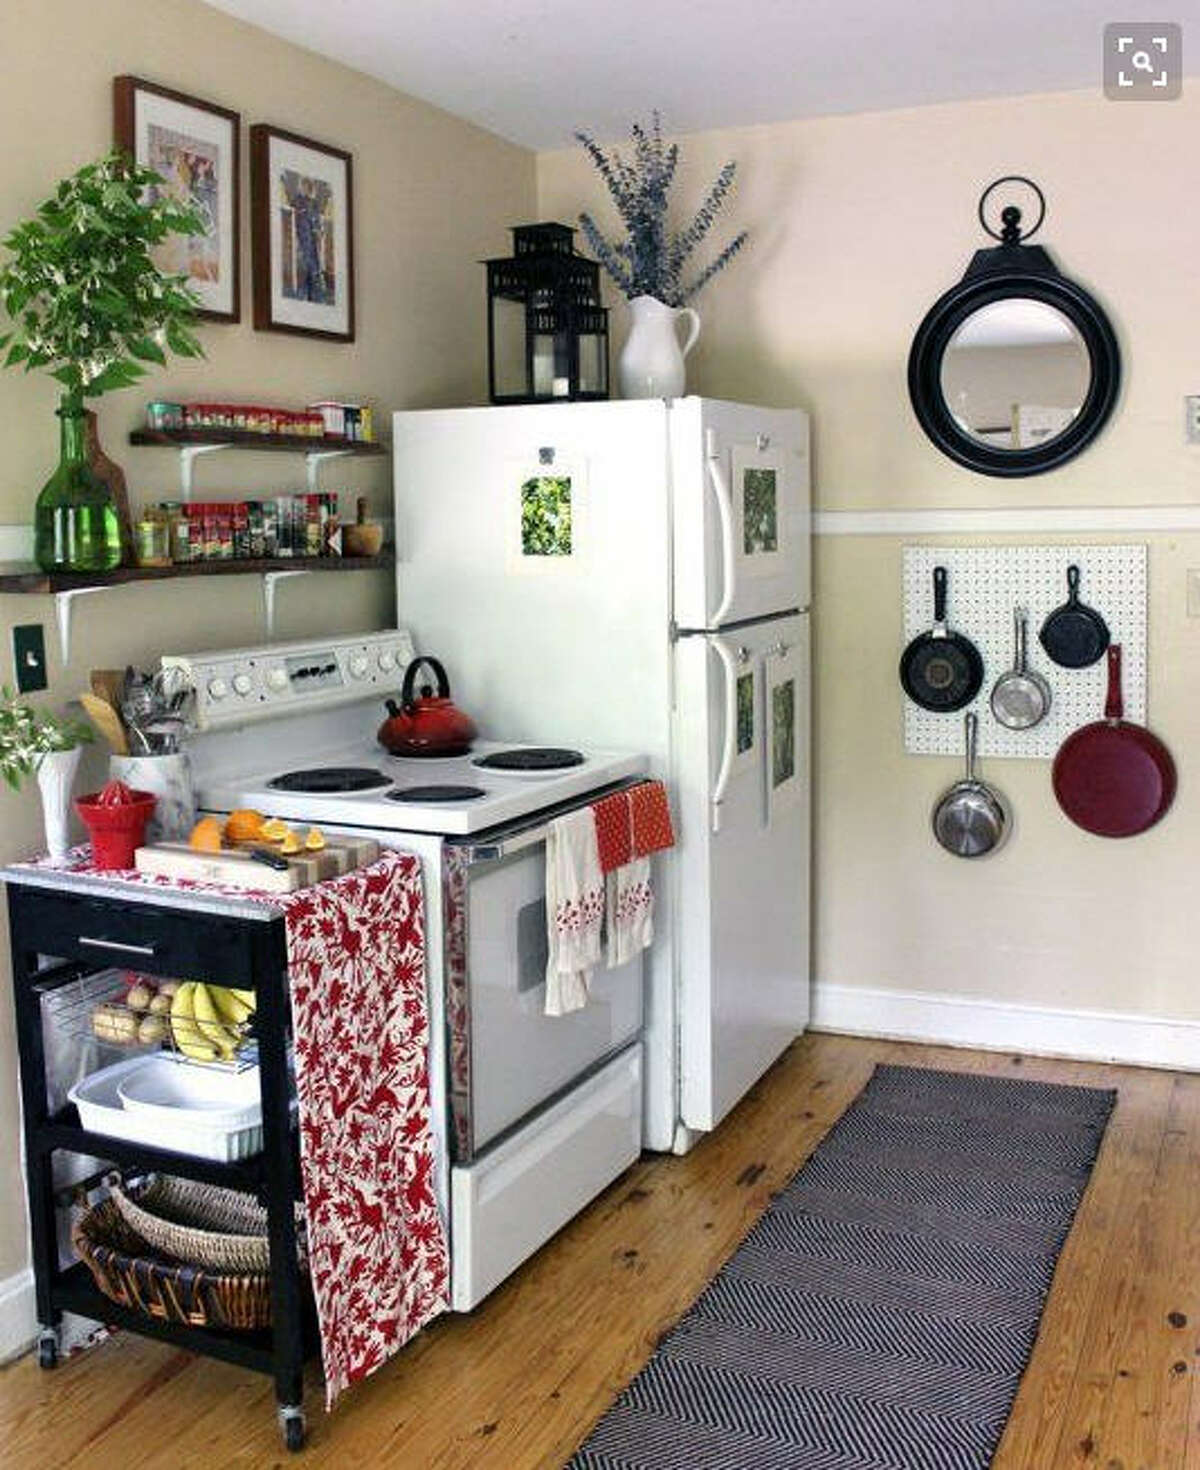 If the apartment is lacking in cabinet space, hanging pots and pans will free up space for some of the smaller items and give the kitchen a modern look. Photo: Pinterest